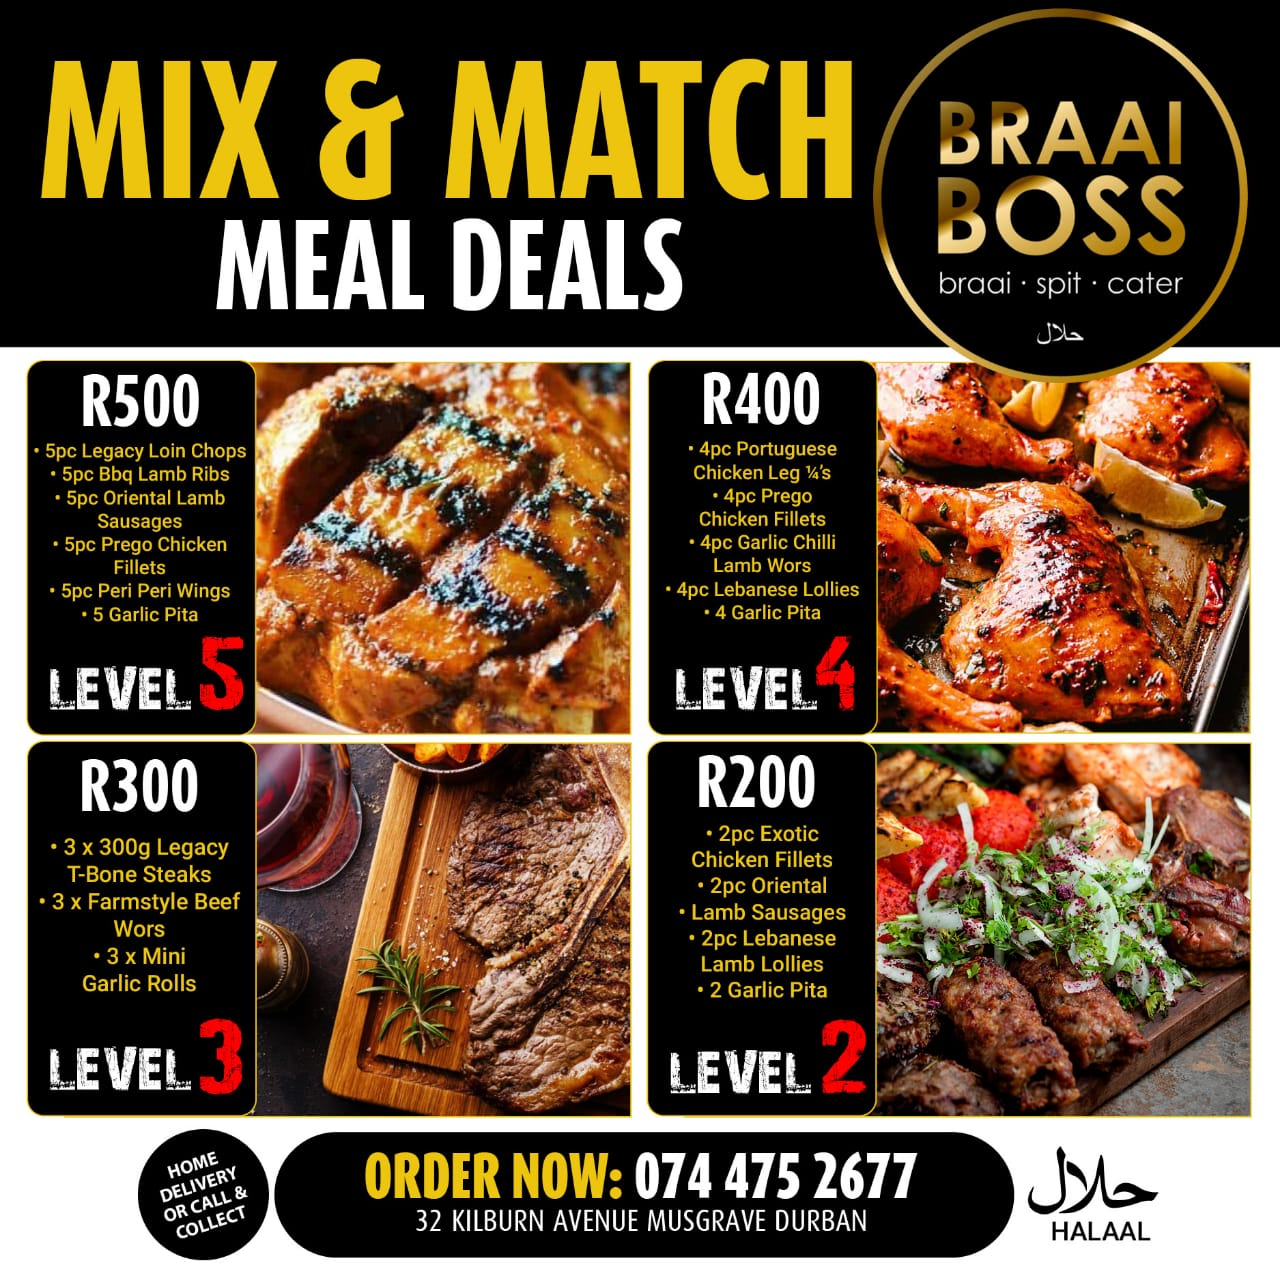 Mix & Match Meal Deals